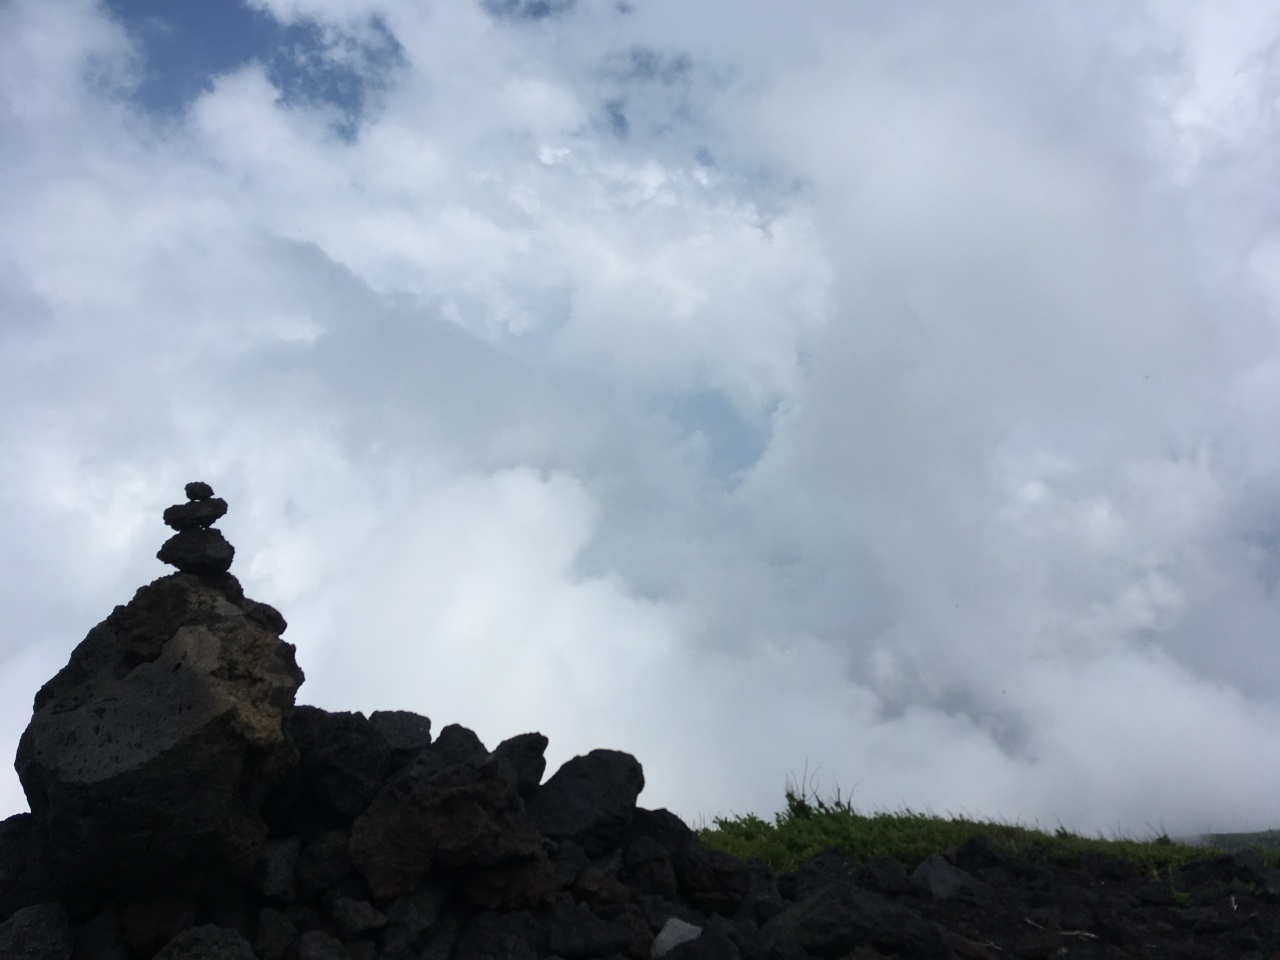 Climbing Mt. Fuji — The Ascent